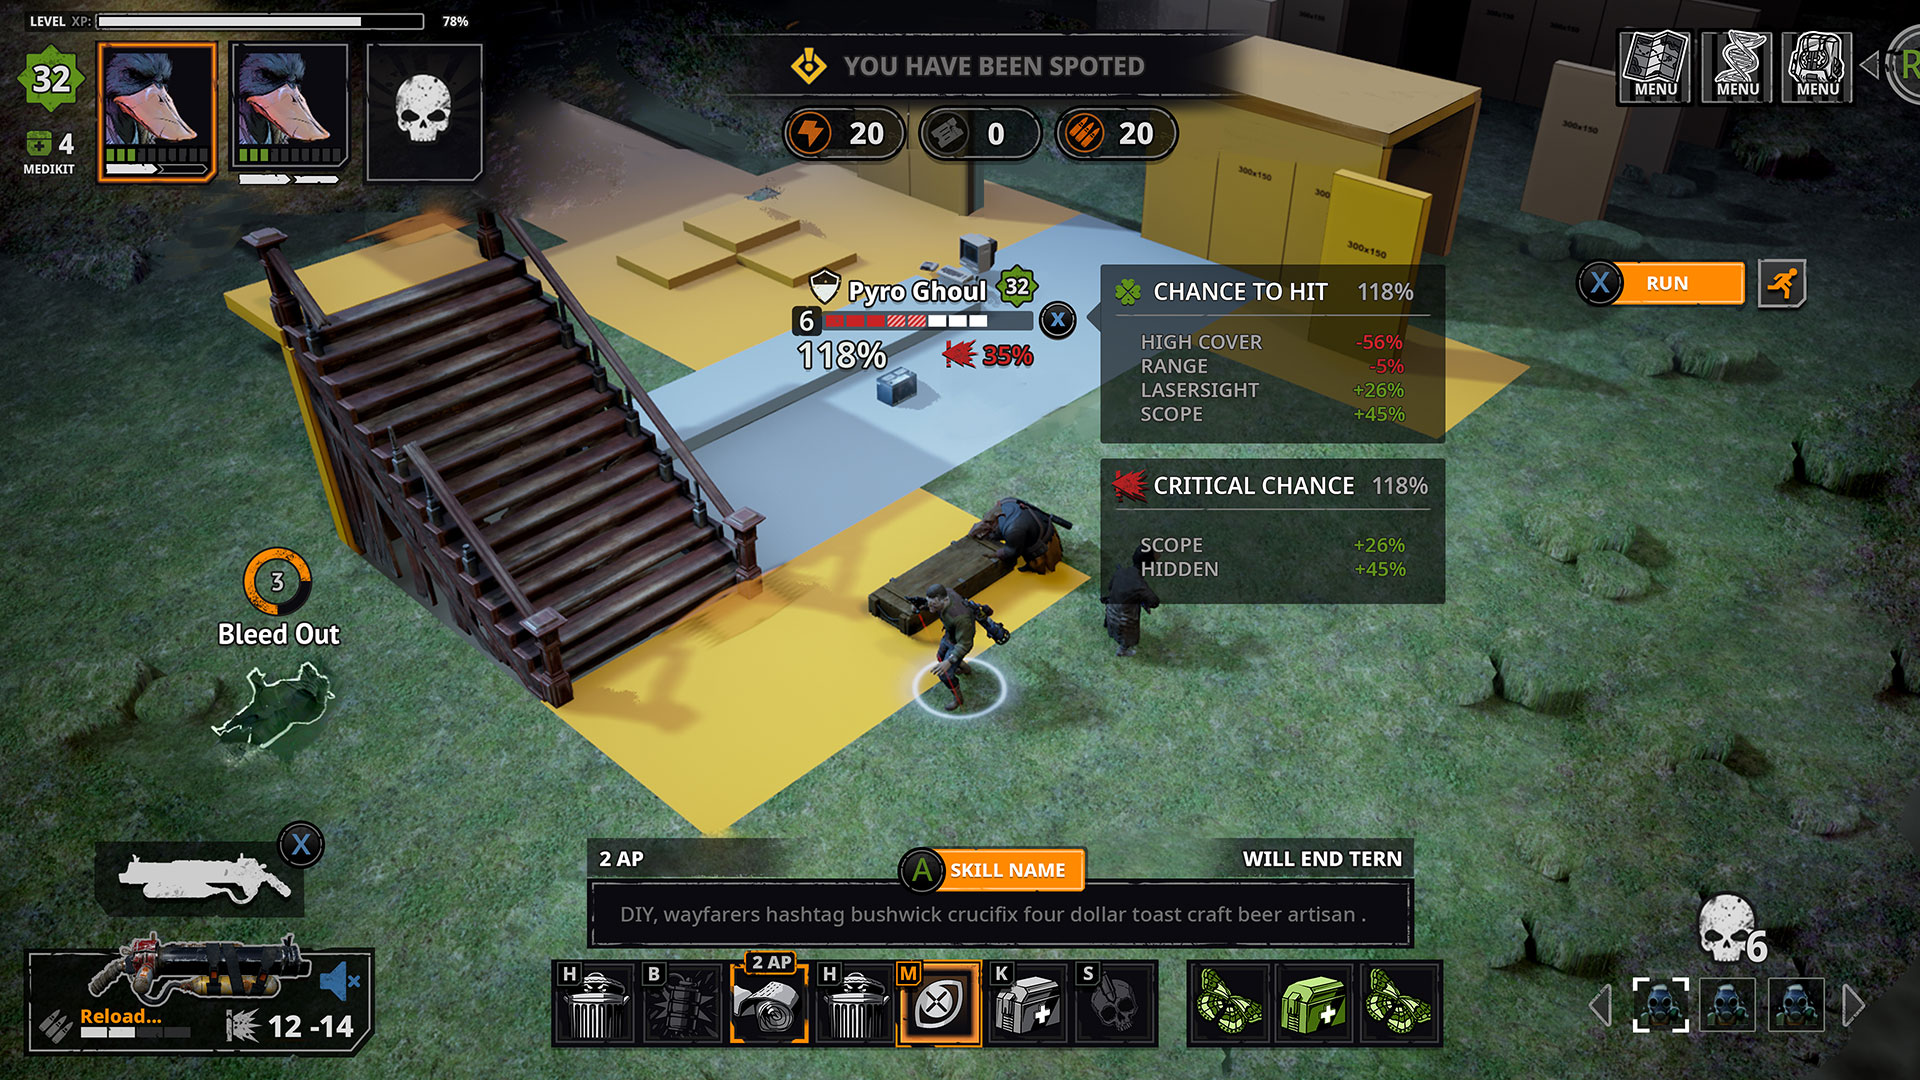 funcom-ui-gameinterface-gameart-roadtoeden-ps4-xbox-tactical-adventure-game-xcom-turn-based-gameux-game-experience-design12